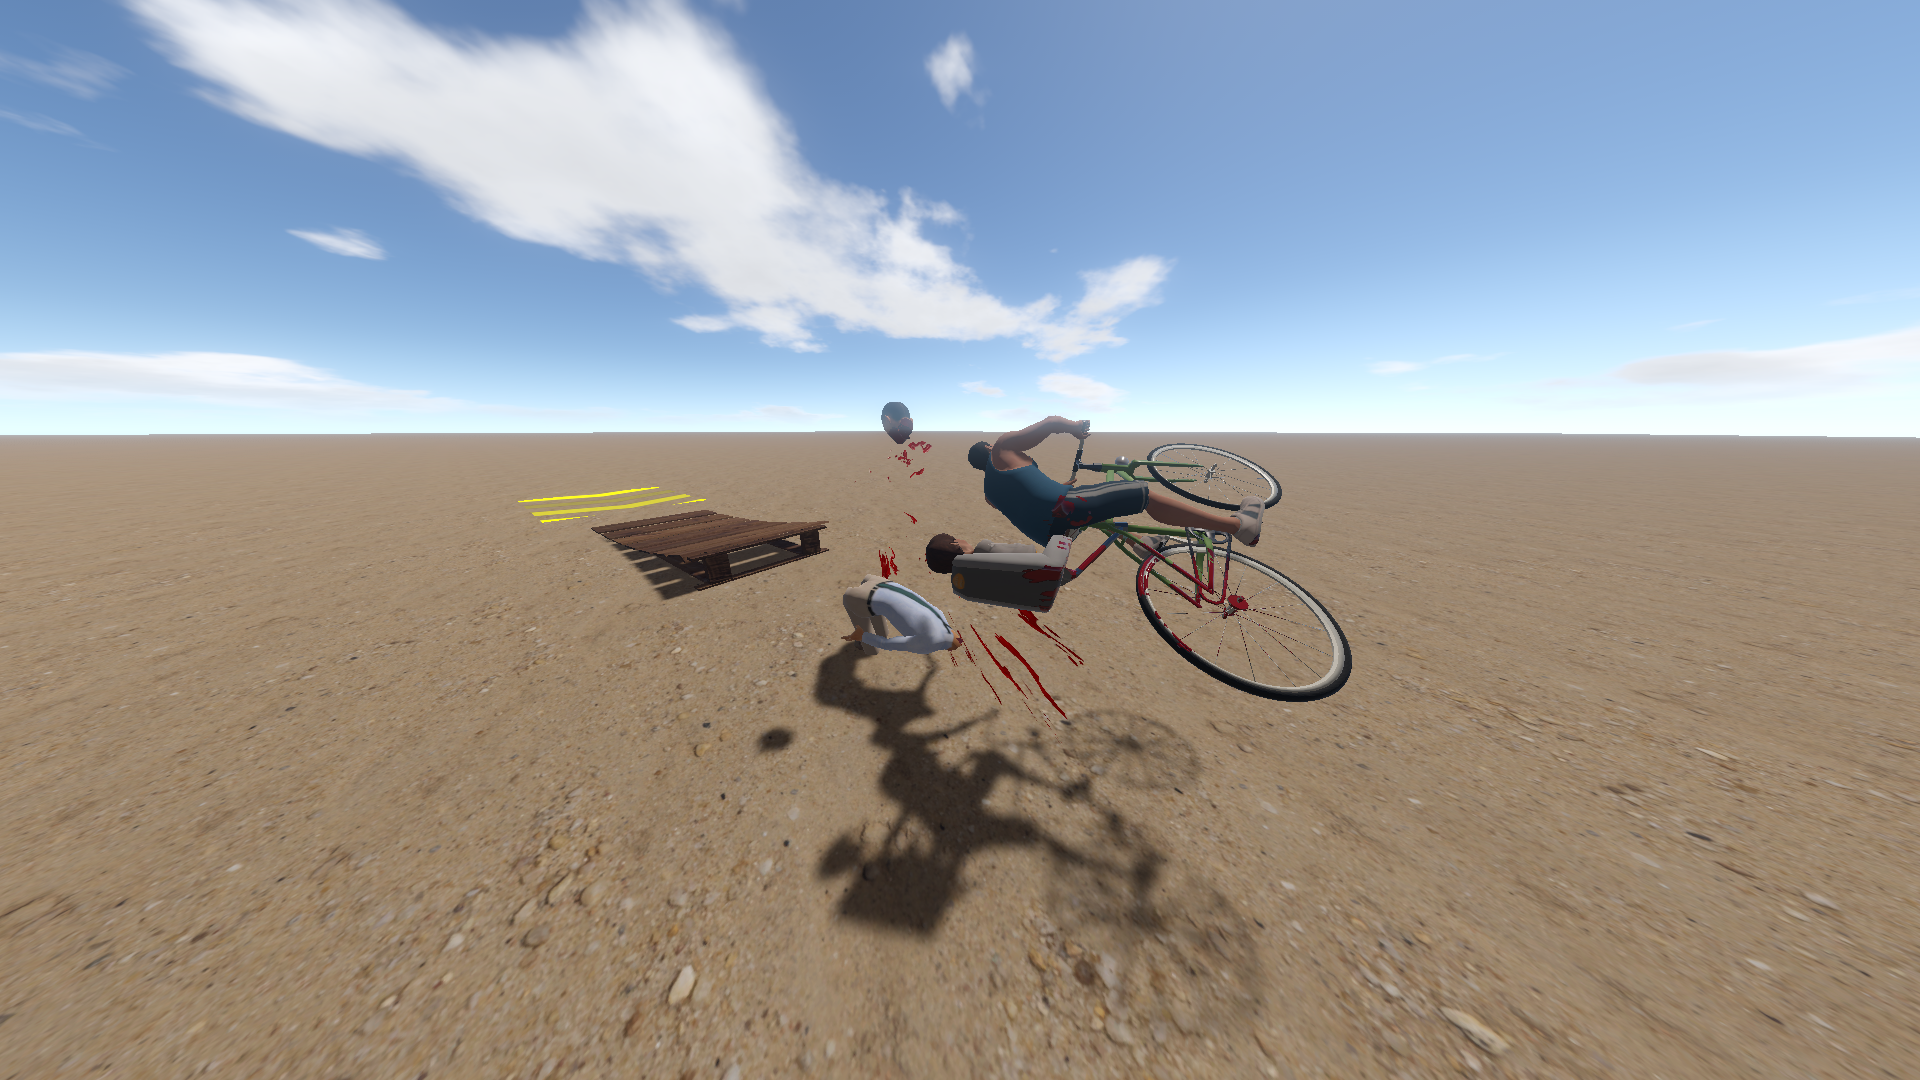 High speed bike decapitation moves yo